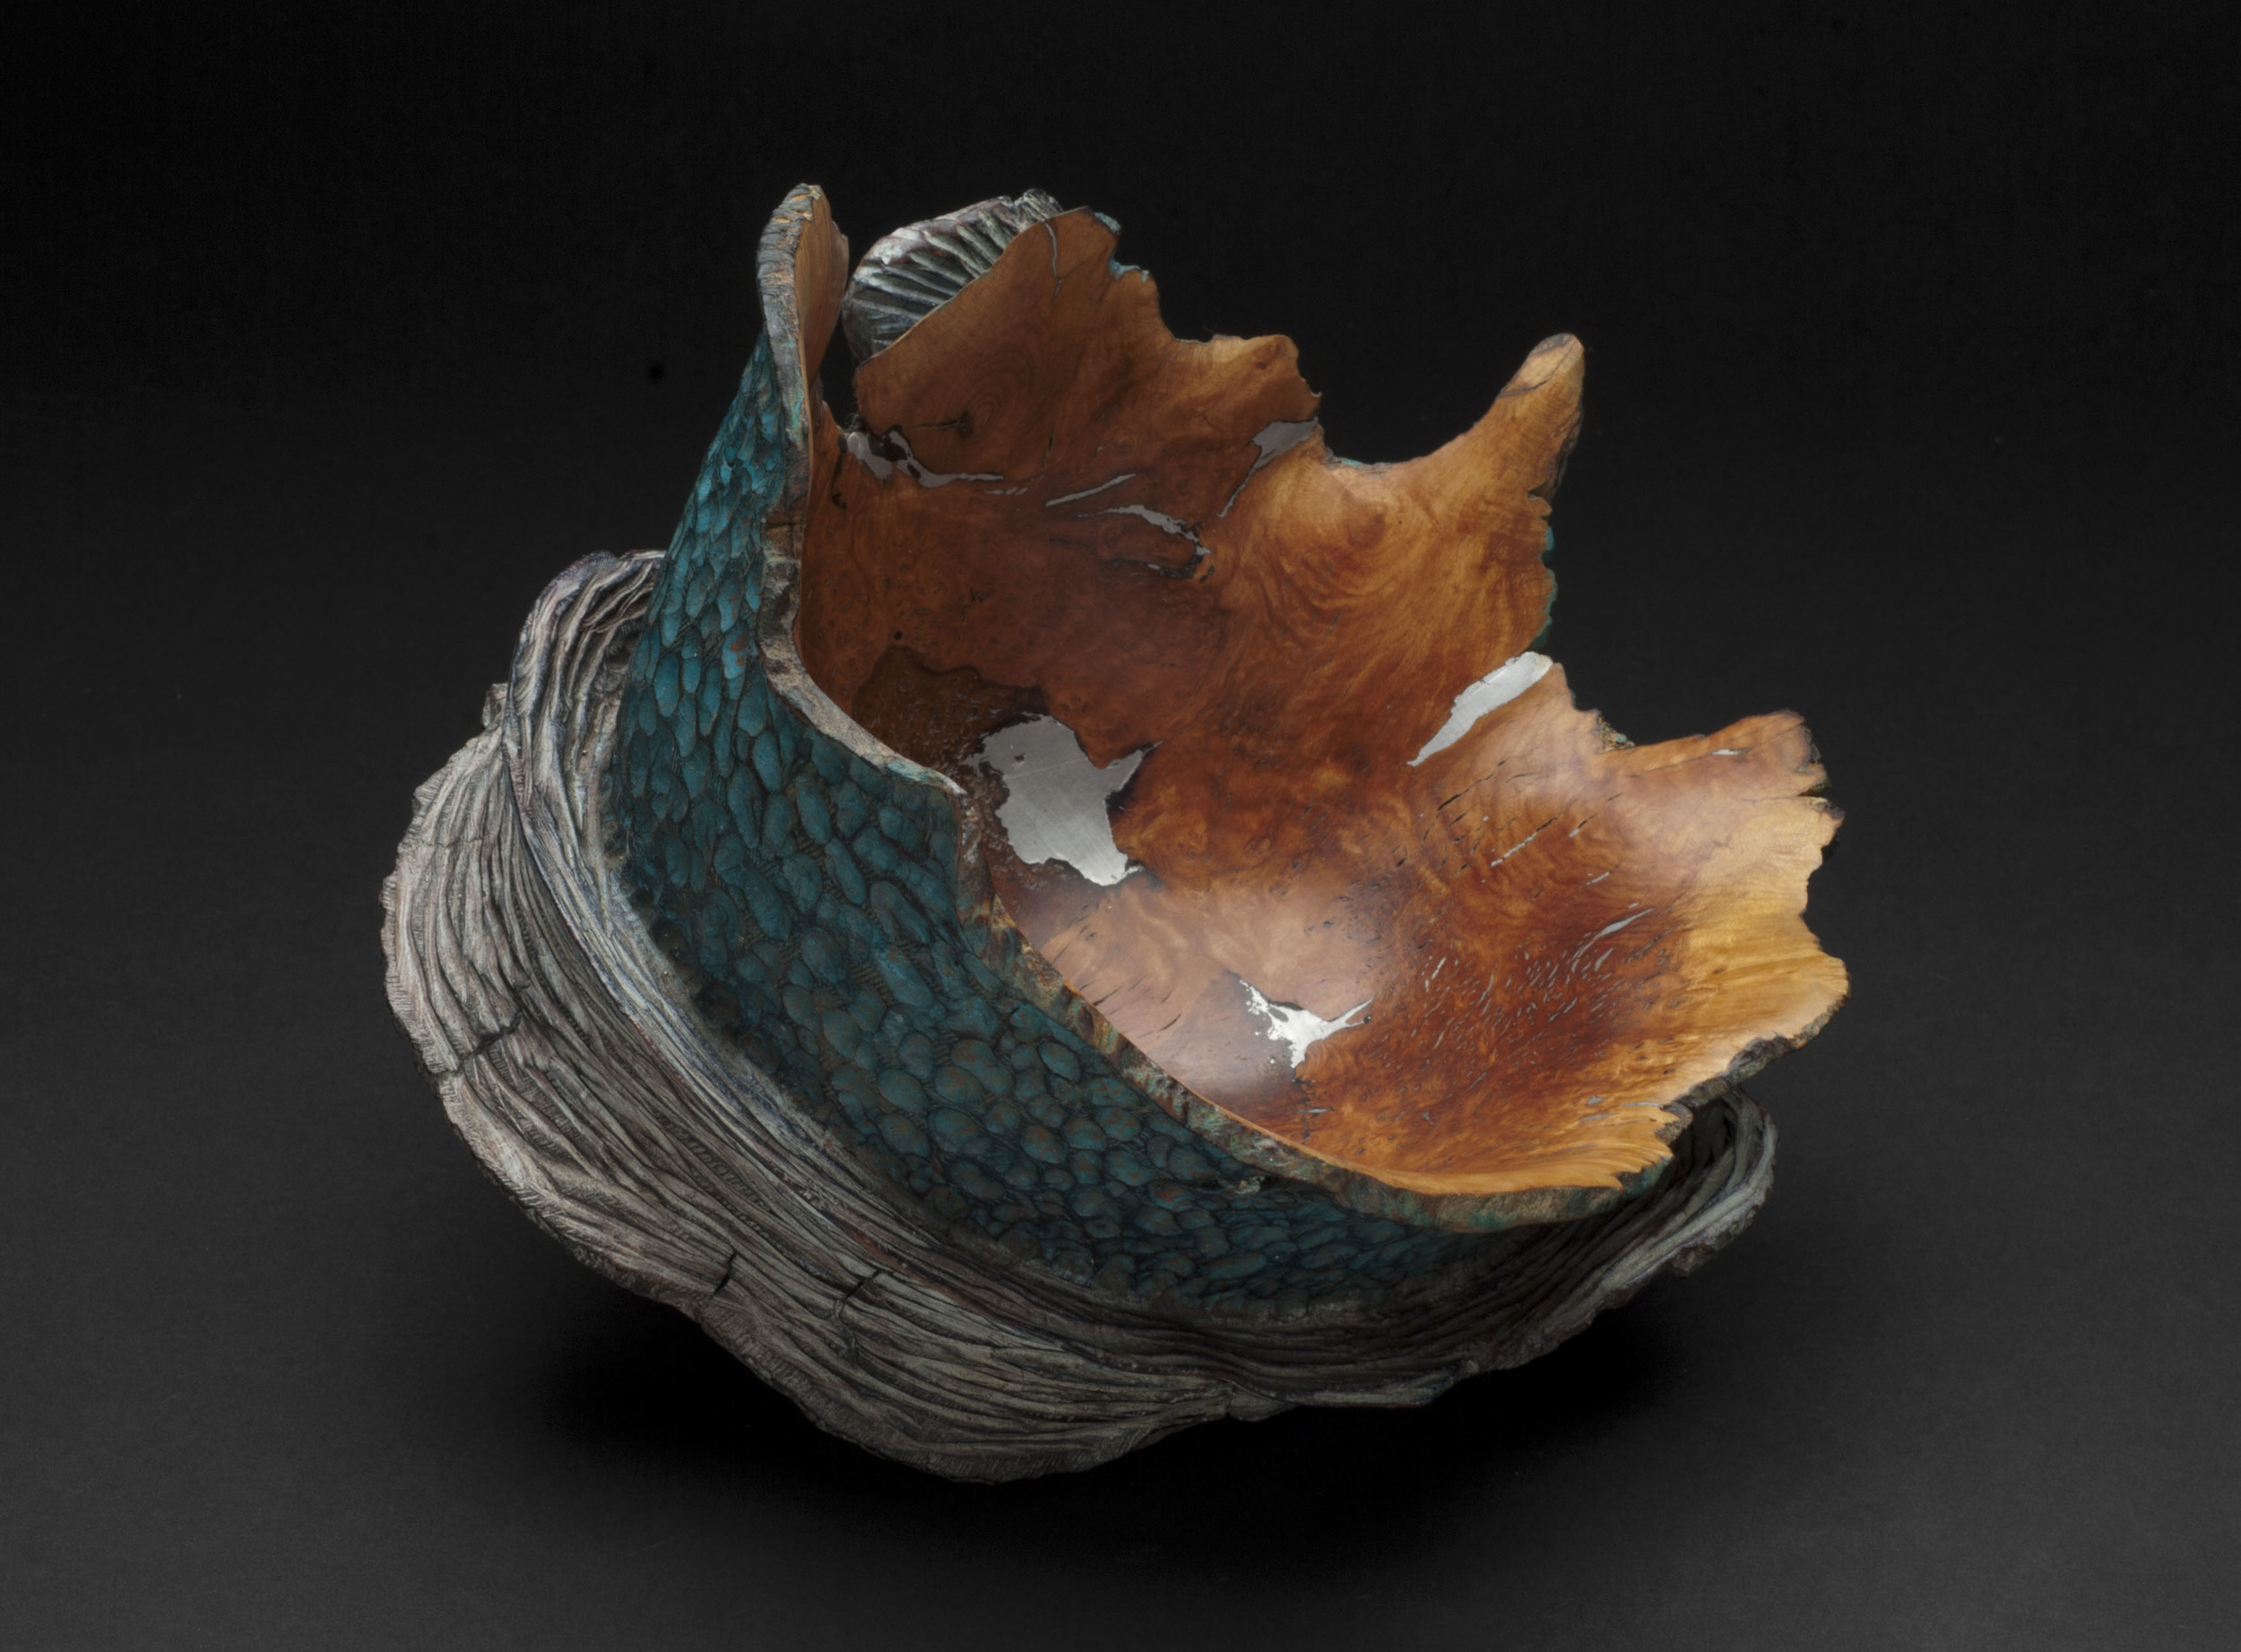 Christophe Nancey    Spiral Bowl 2  , 2012 Heather root, with pewter inlay and some parts patinated with pigments and oil / 5.91 x 7.87 inches / 15 x 20 cm / CNa 1